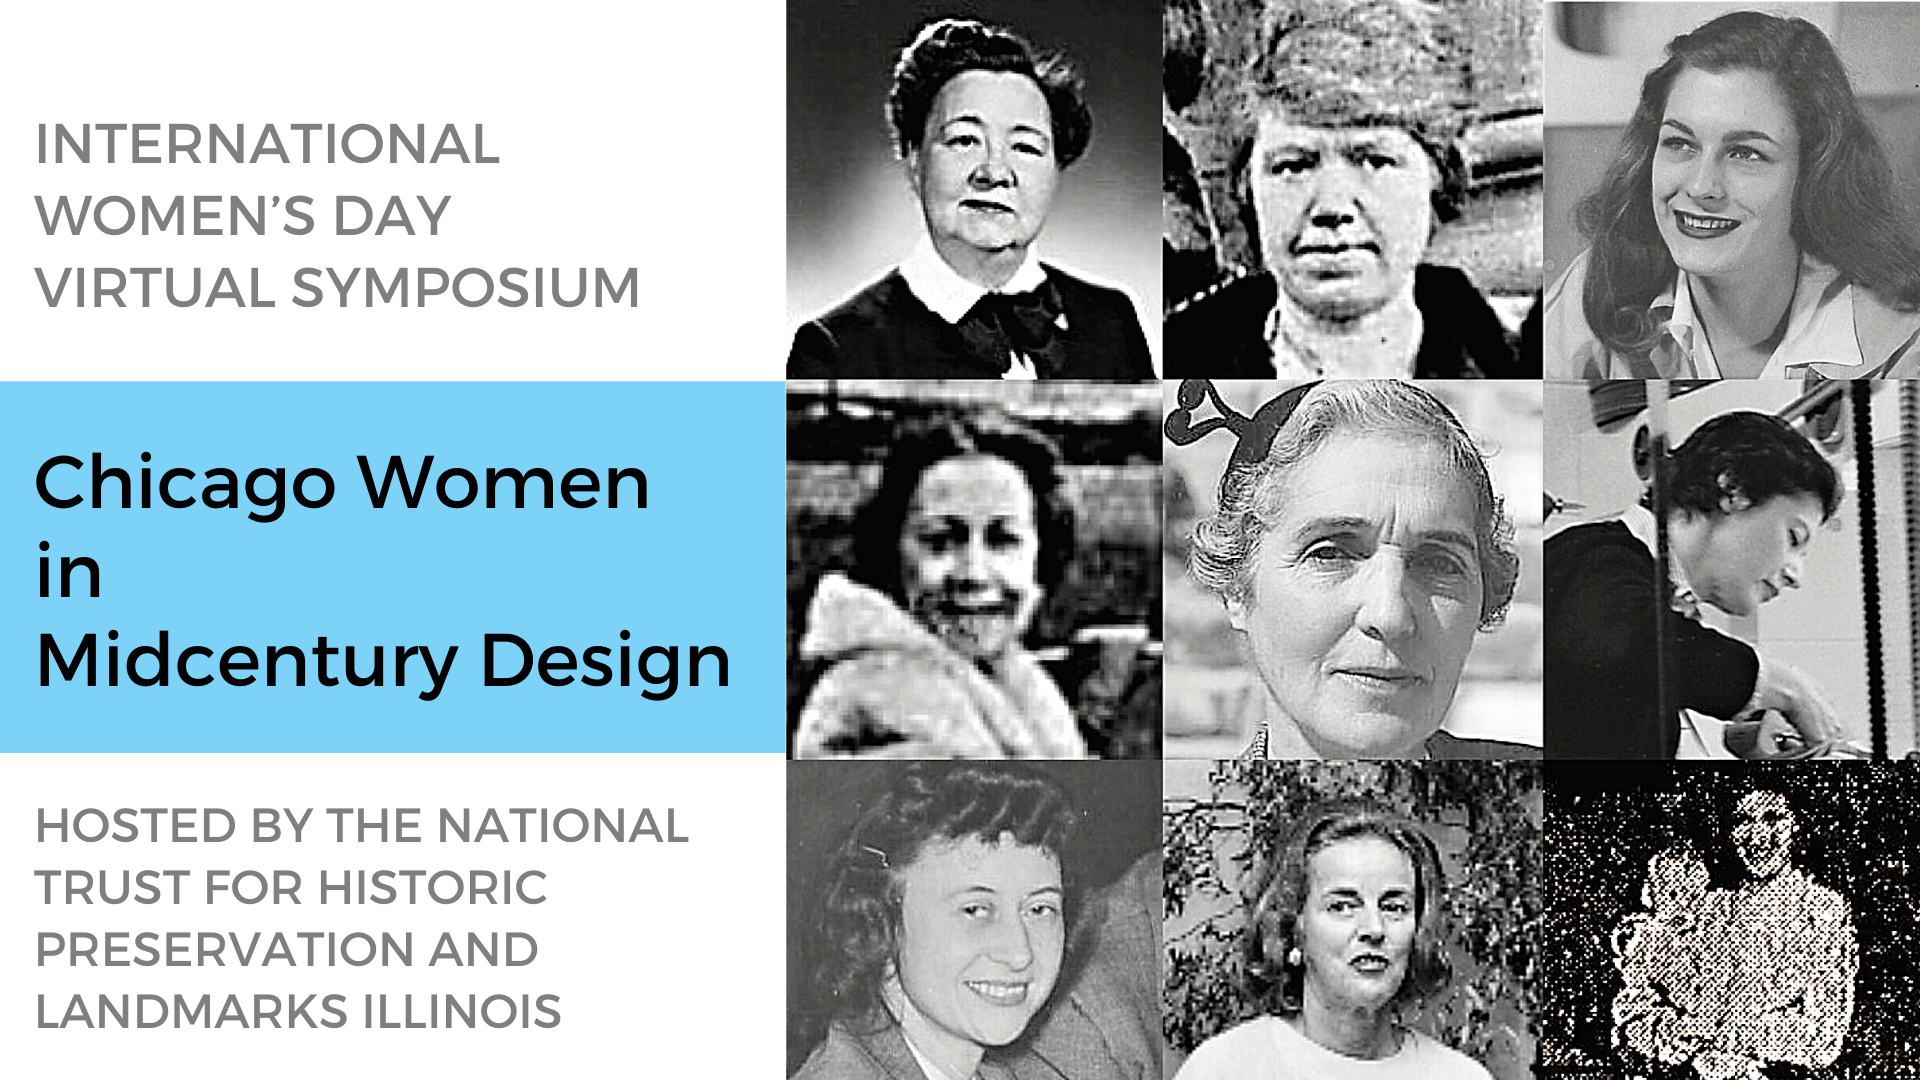 Chicago Women in Midcentury Design